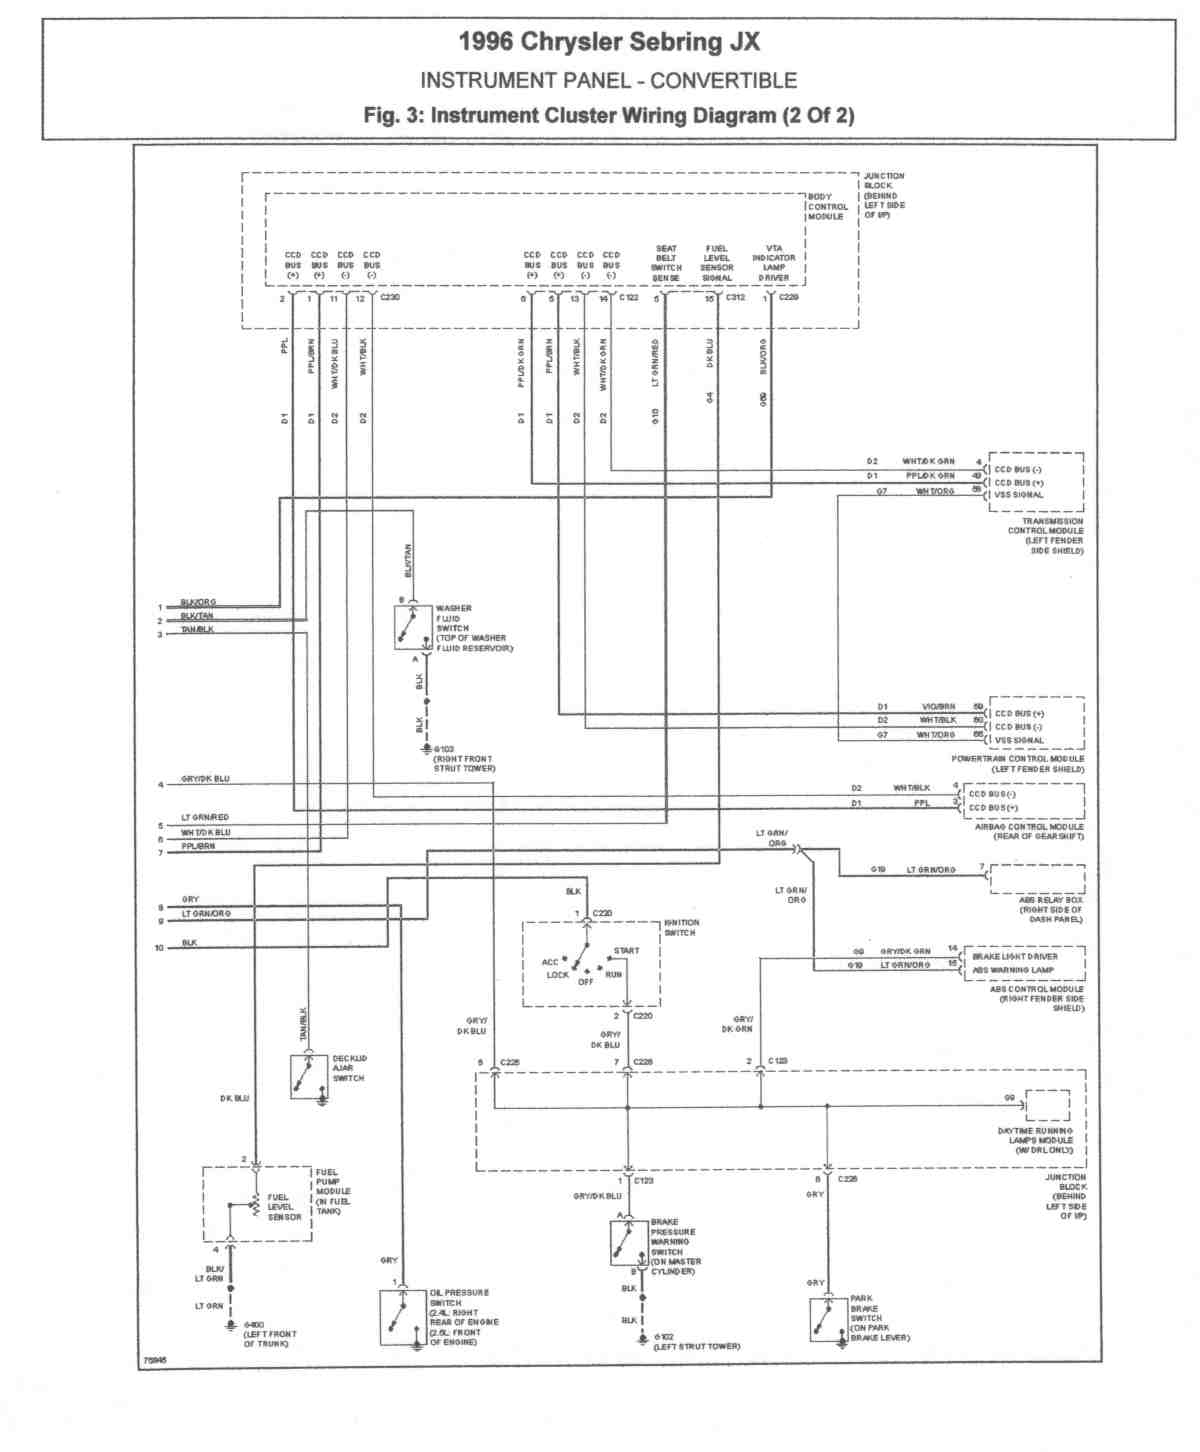 Docu on Chrysler Sebring Convertible Wiring Diagram